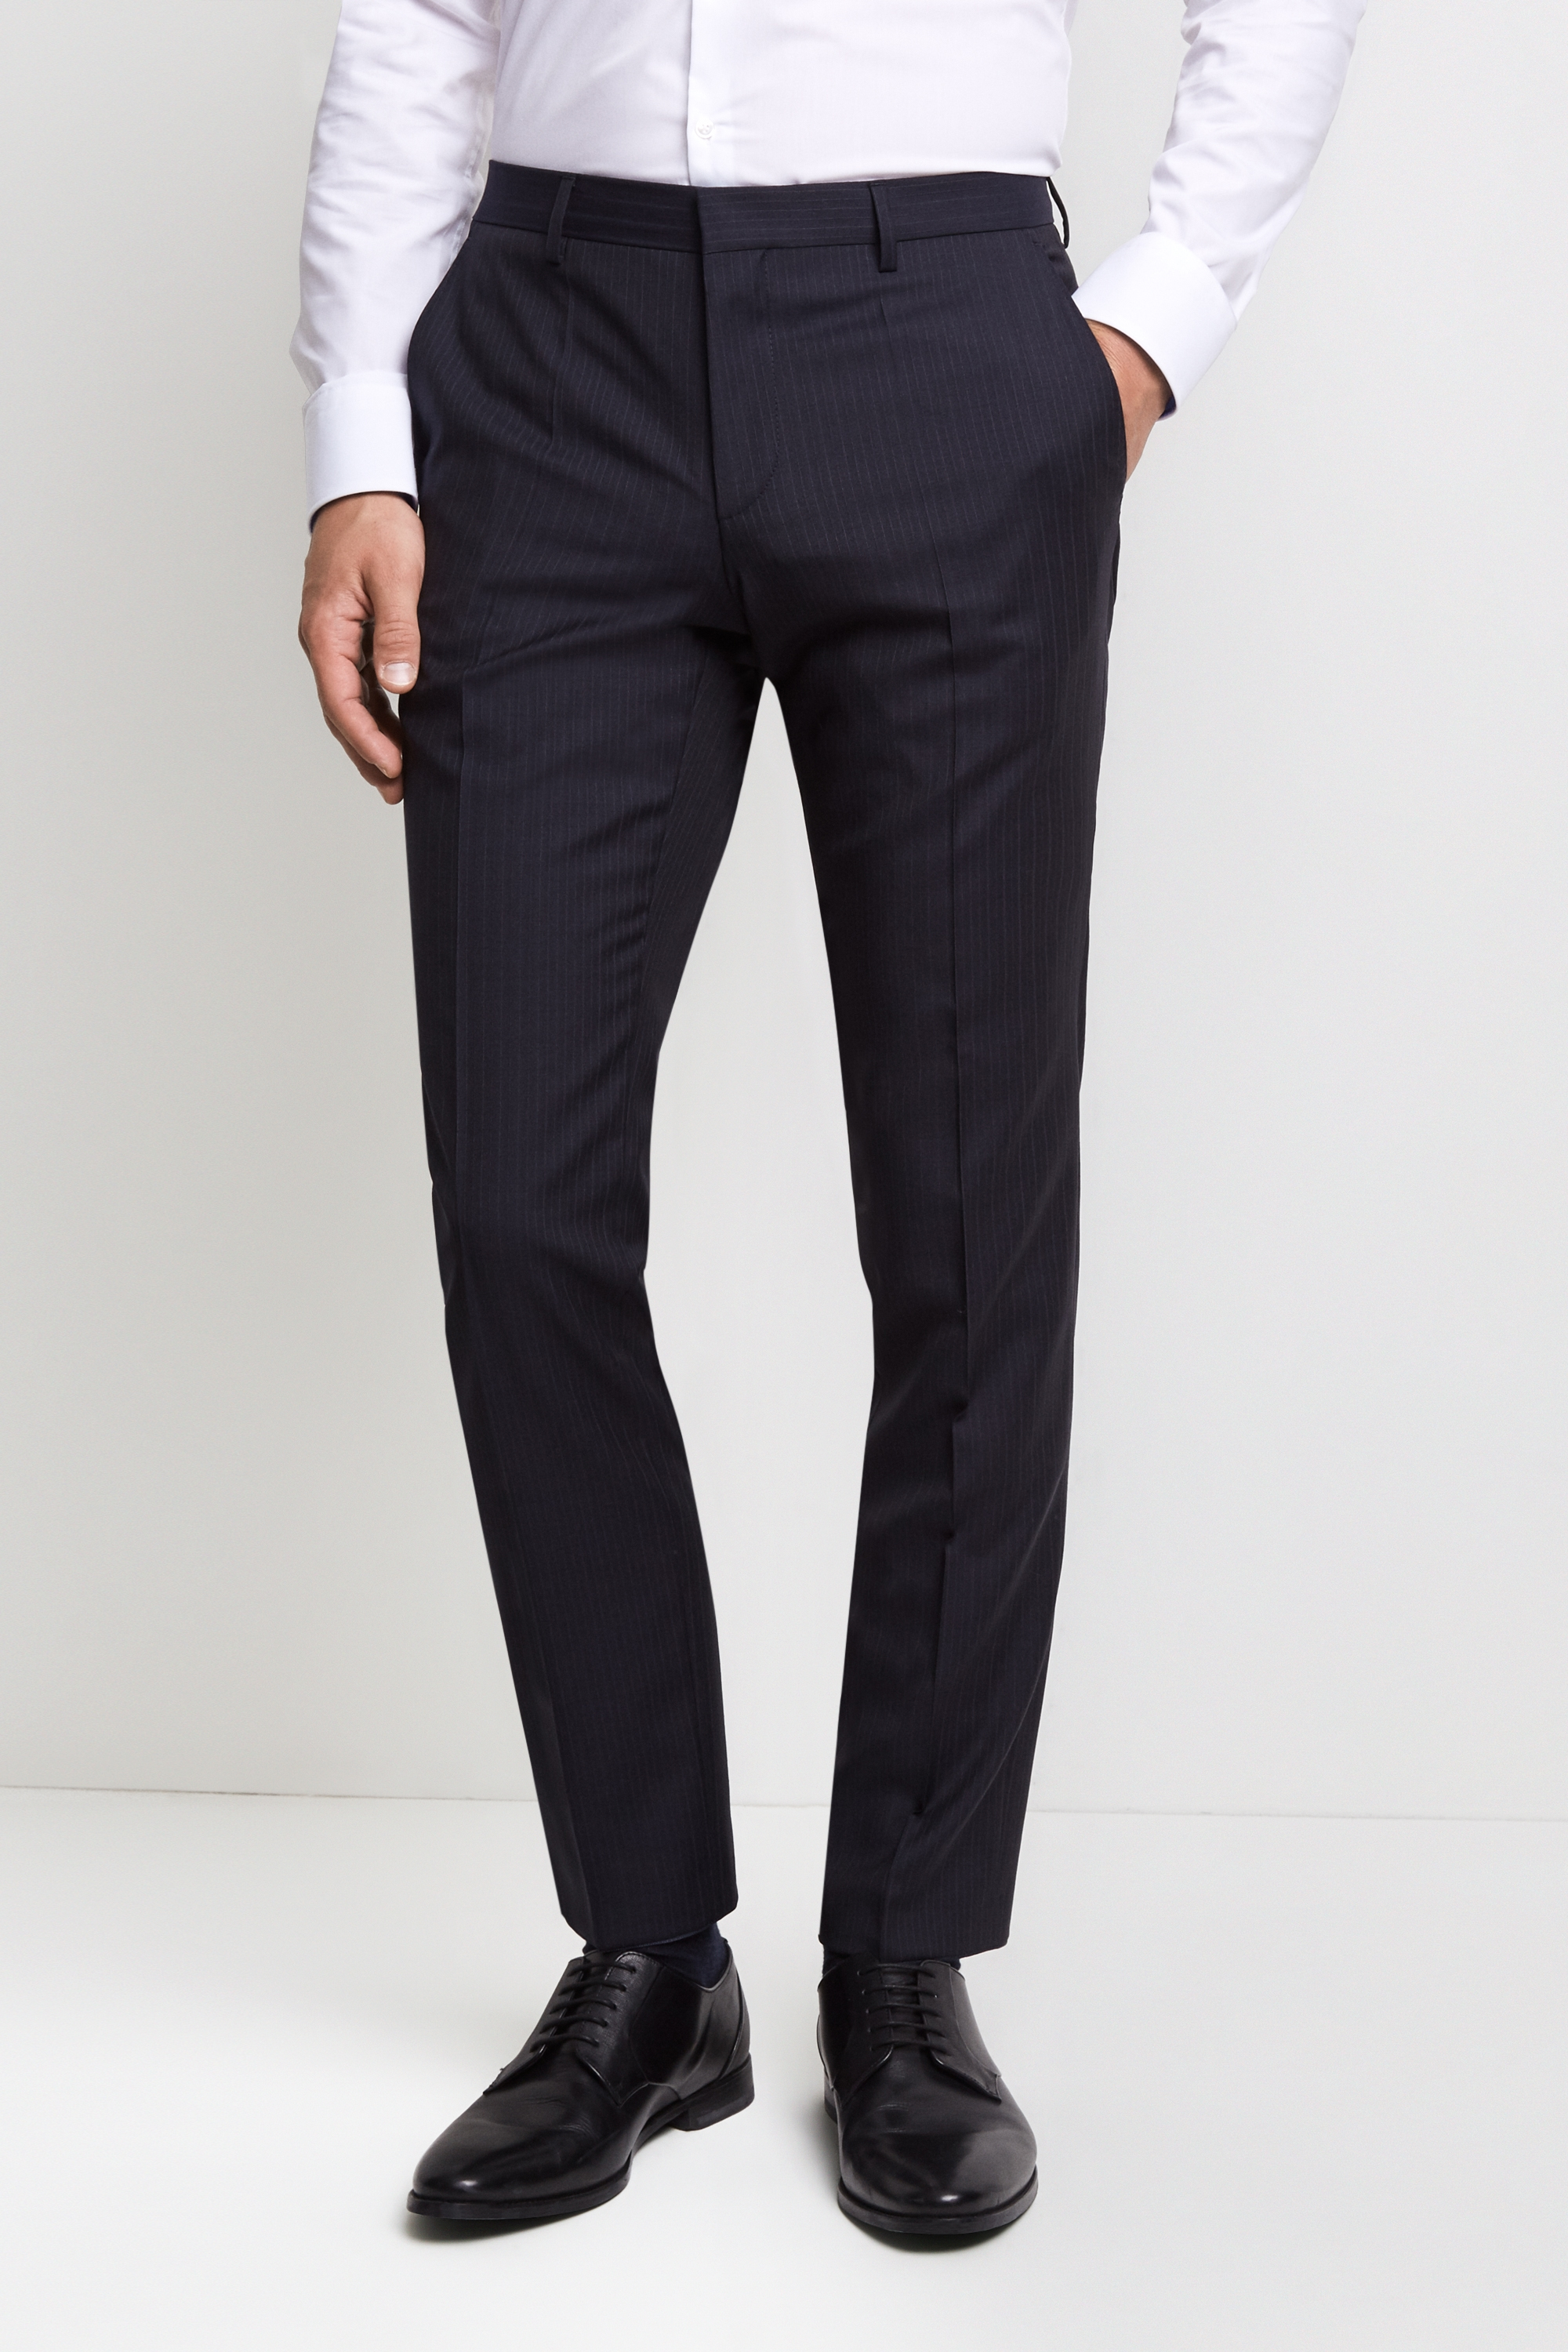 HUGO by Hugo Boss Tailored Fit Navy Pinstripe Trousers